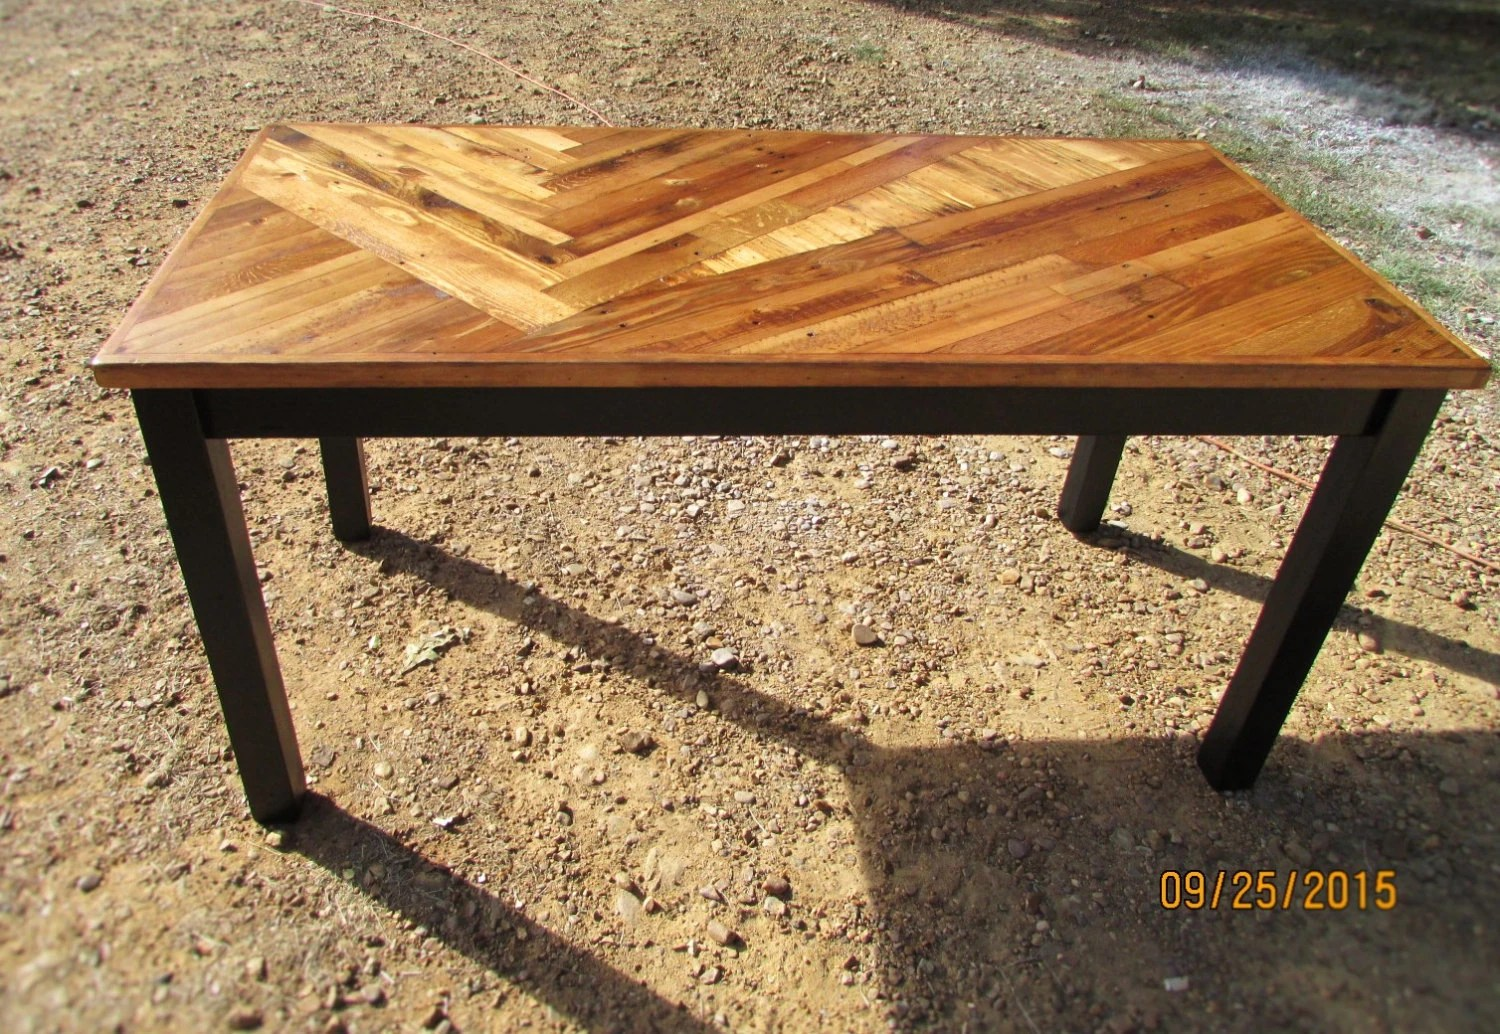 rustic kitchen table rustic dining table rustic kitchen tables Rustic Kitchen Table Rustic Dining Table Wood Art Table Custom Kitchen Table lath table log cabin furniture Stained wood table